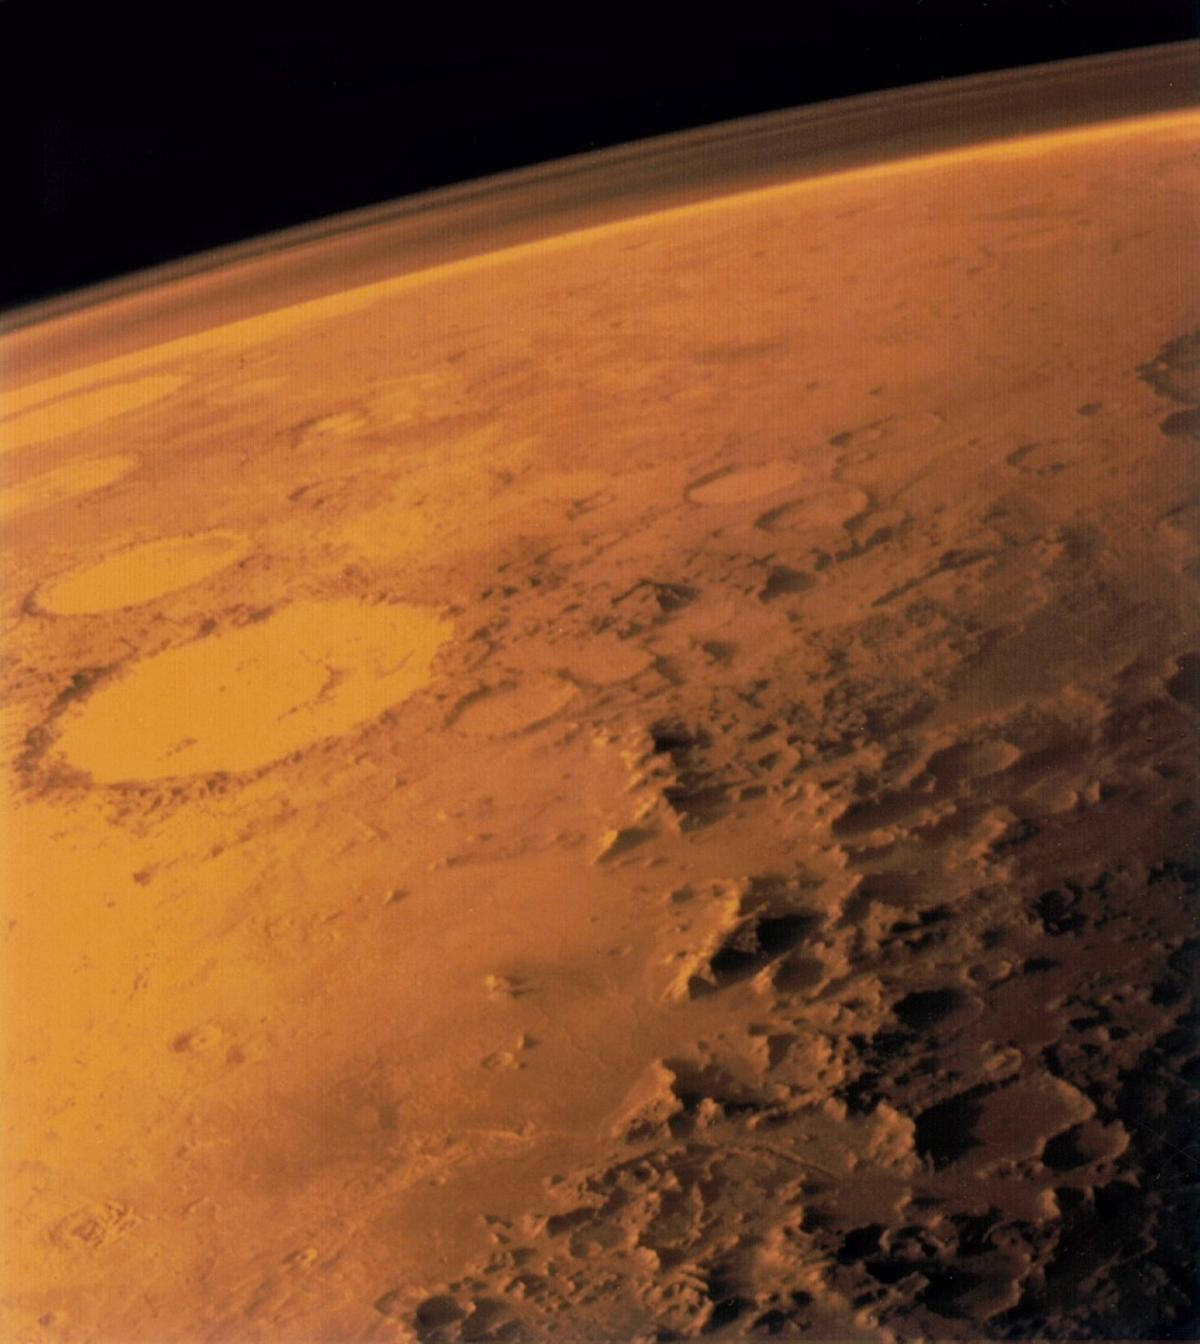 The levels of atomic oxygen detected in the Martian mesosphere were only around half of what was expected